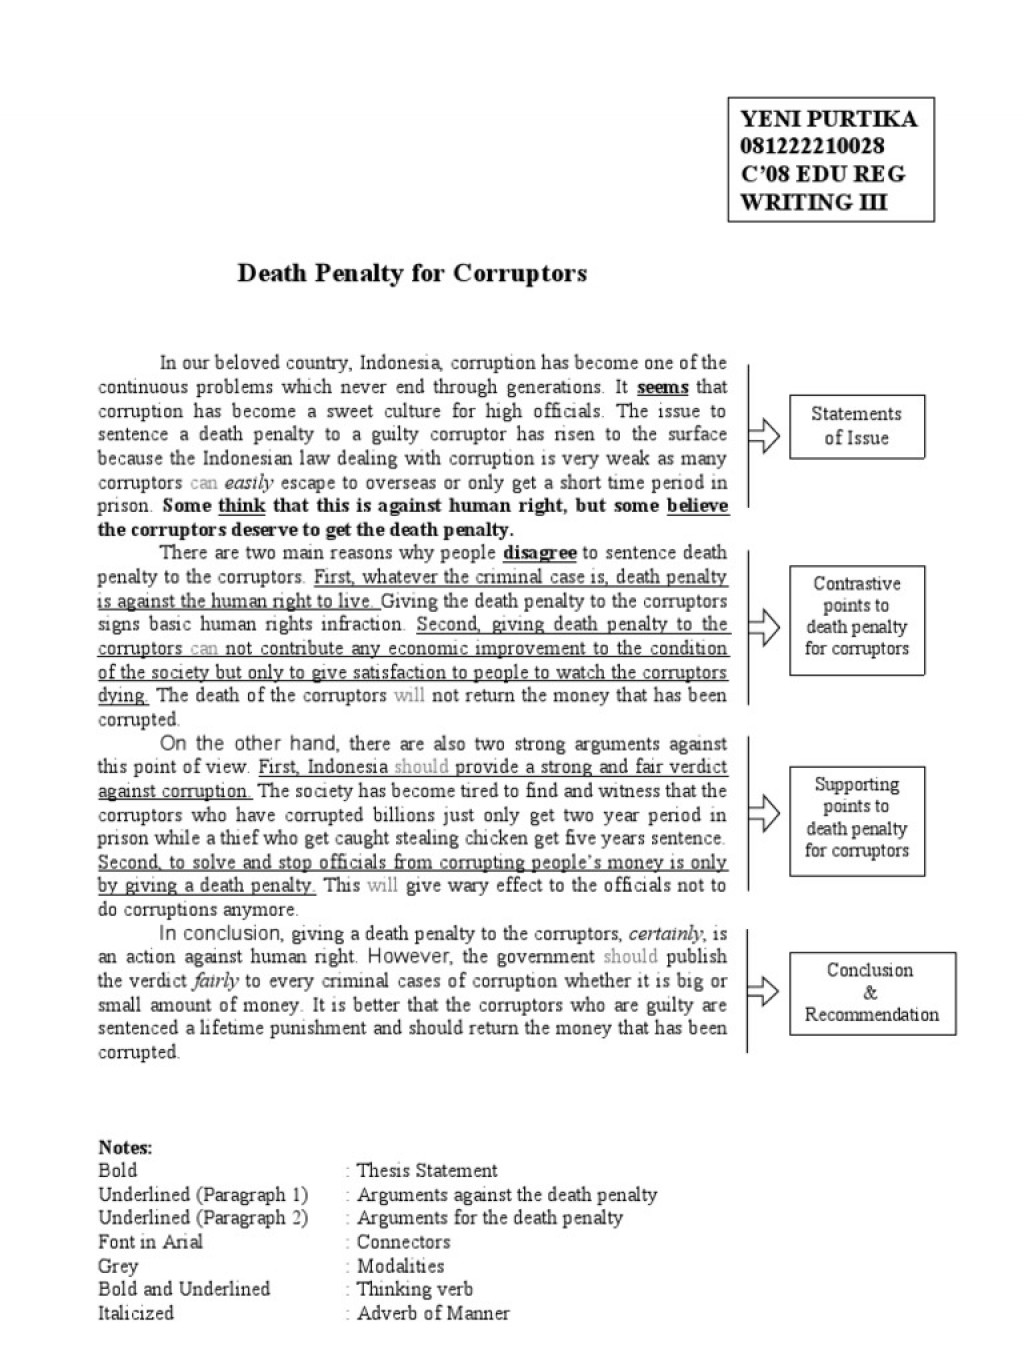 014 Death Penalty Essays Against Essay The Capital Punishment Paper Ou Outline Argumentative Persuasive Awful Pros And Cons Conclusion Large